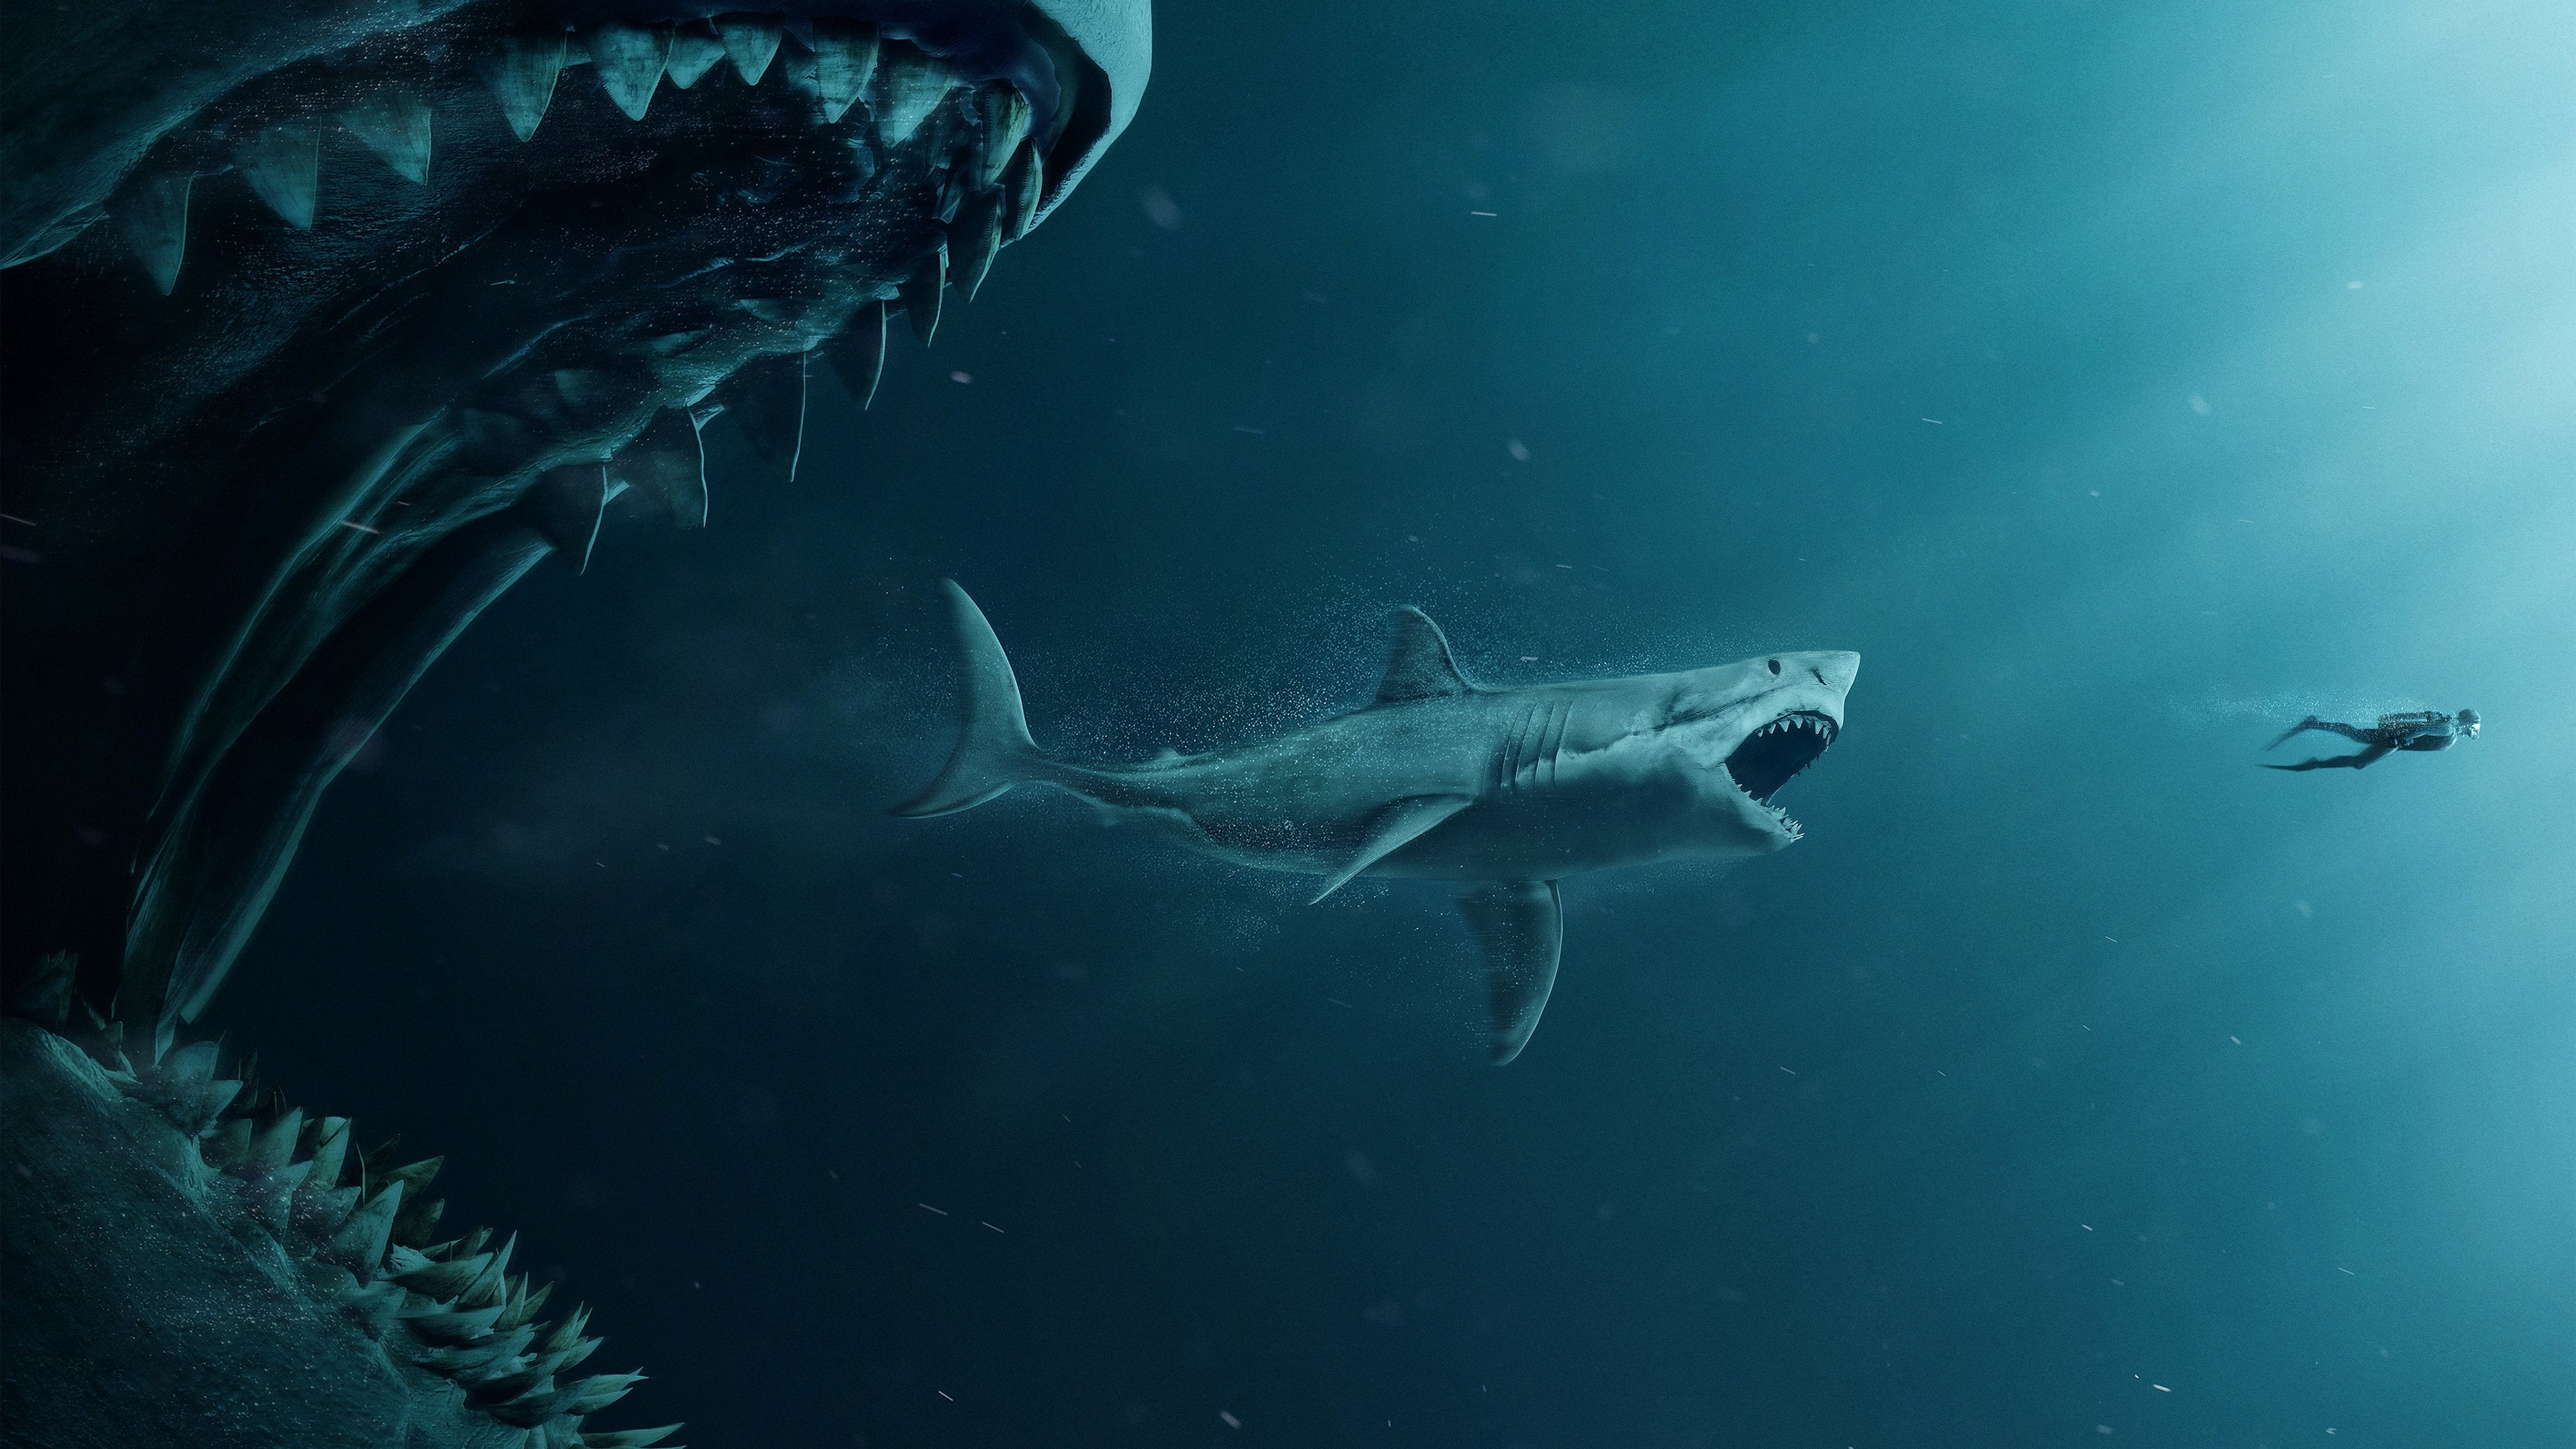 Shark 4K wallpapers for your desktop or mobile screen and 3840x2160